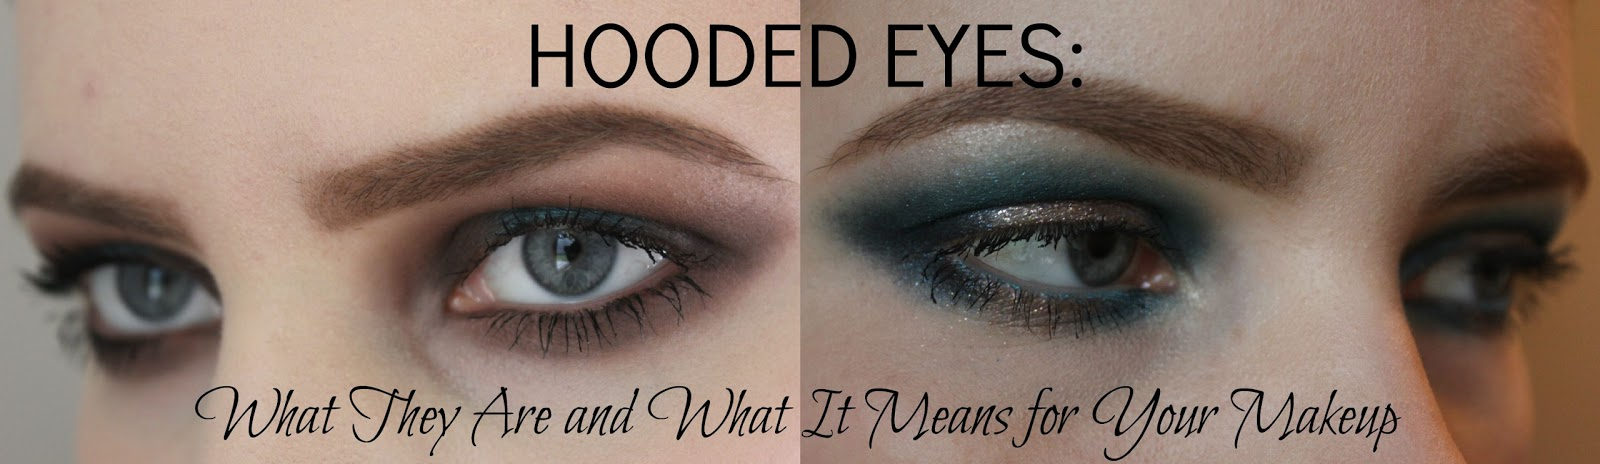 Hooded Eyes Makeup Chart | Www.pixshark.com - Images Galleries With A Bite!